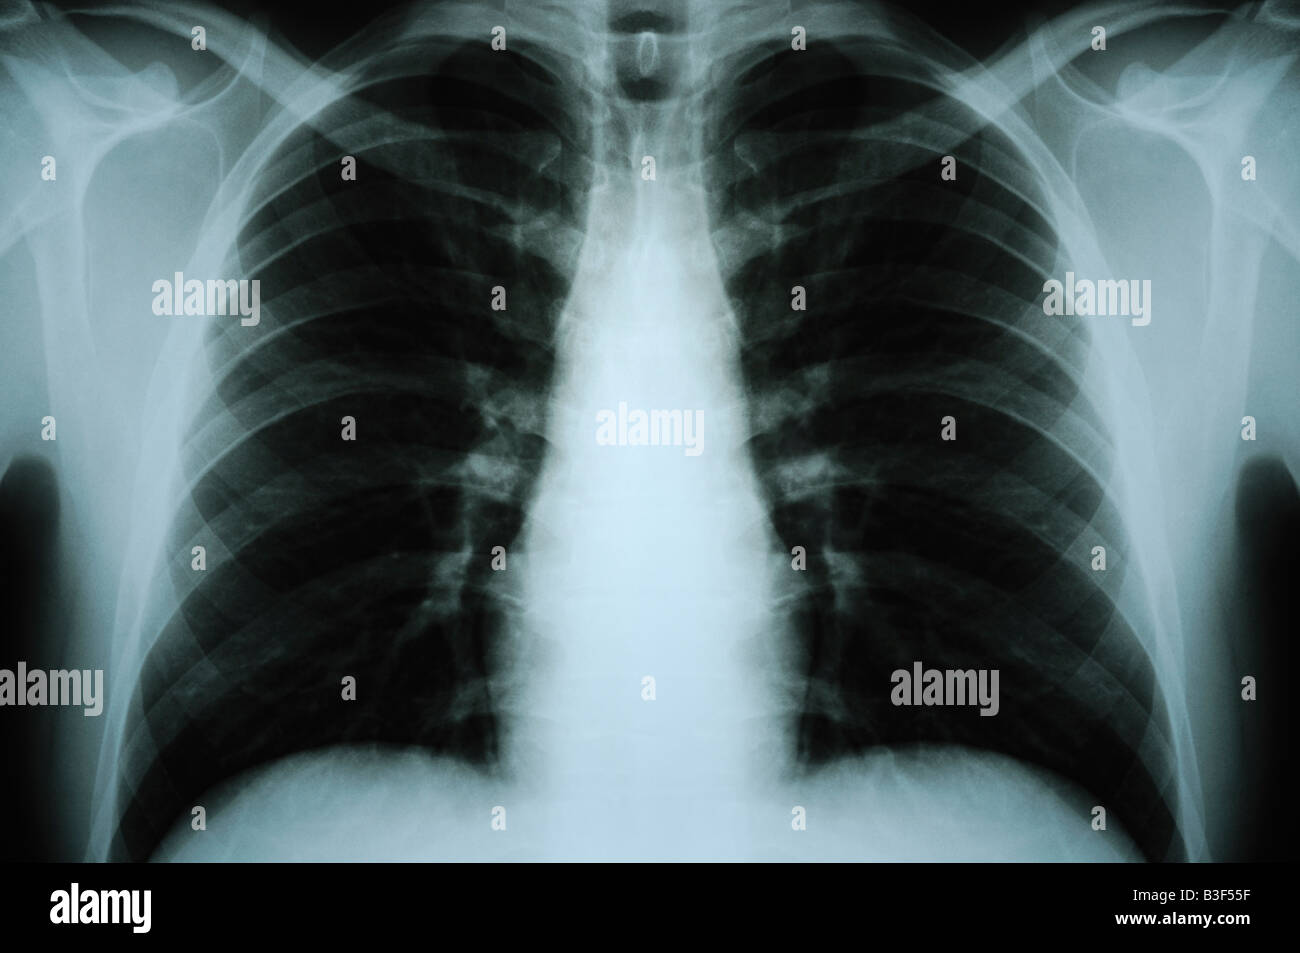 Chest X Ray of a an Adult Human Male Digitally Altered to be Symmetrical - Stock Image